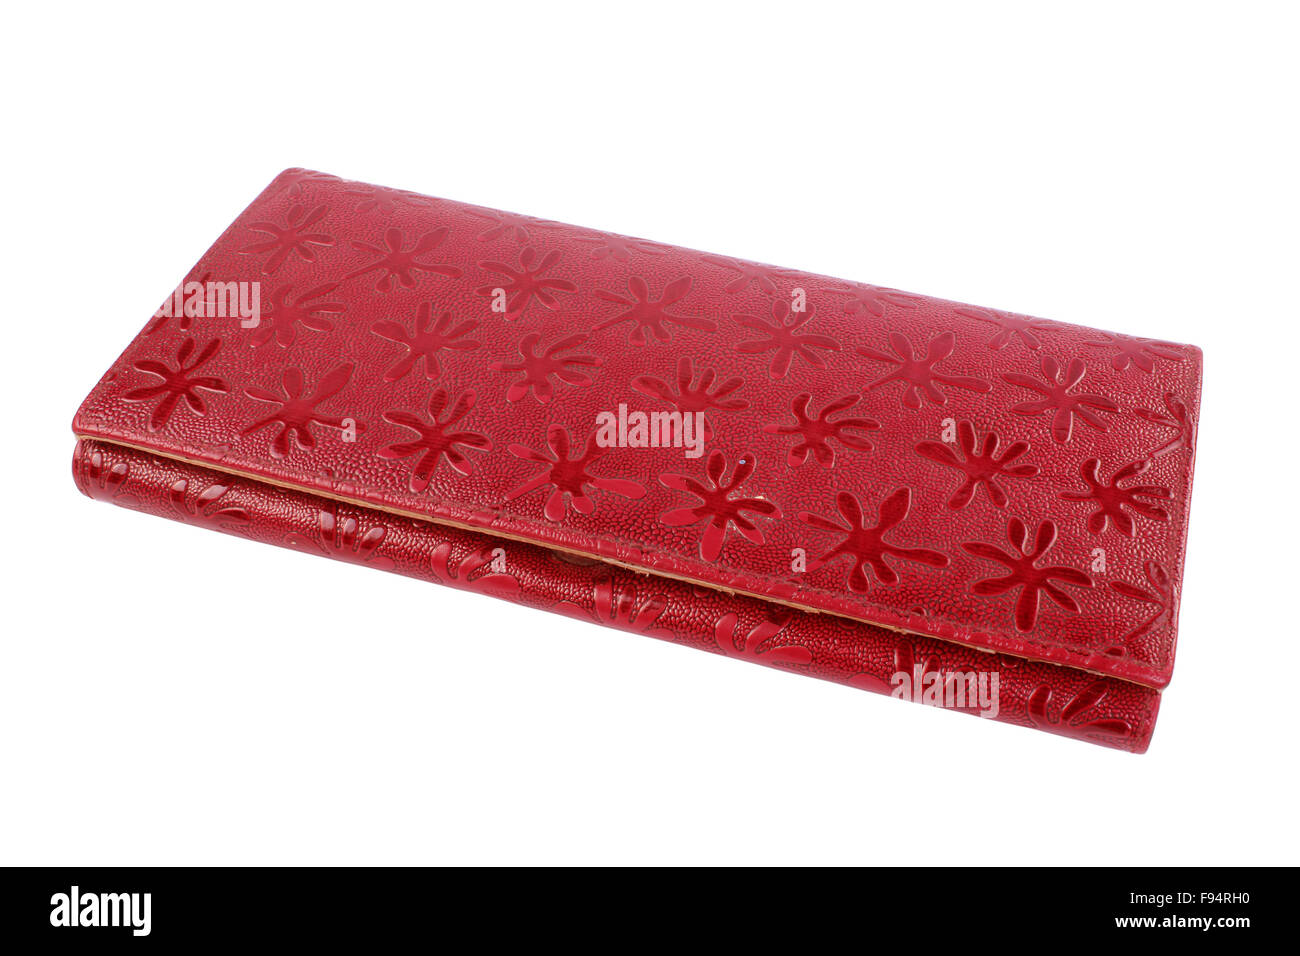 eautiful red makeup bag isolated on white - Stock Image